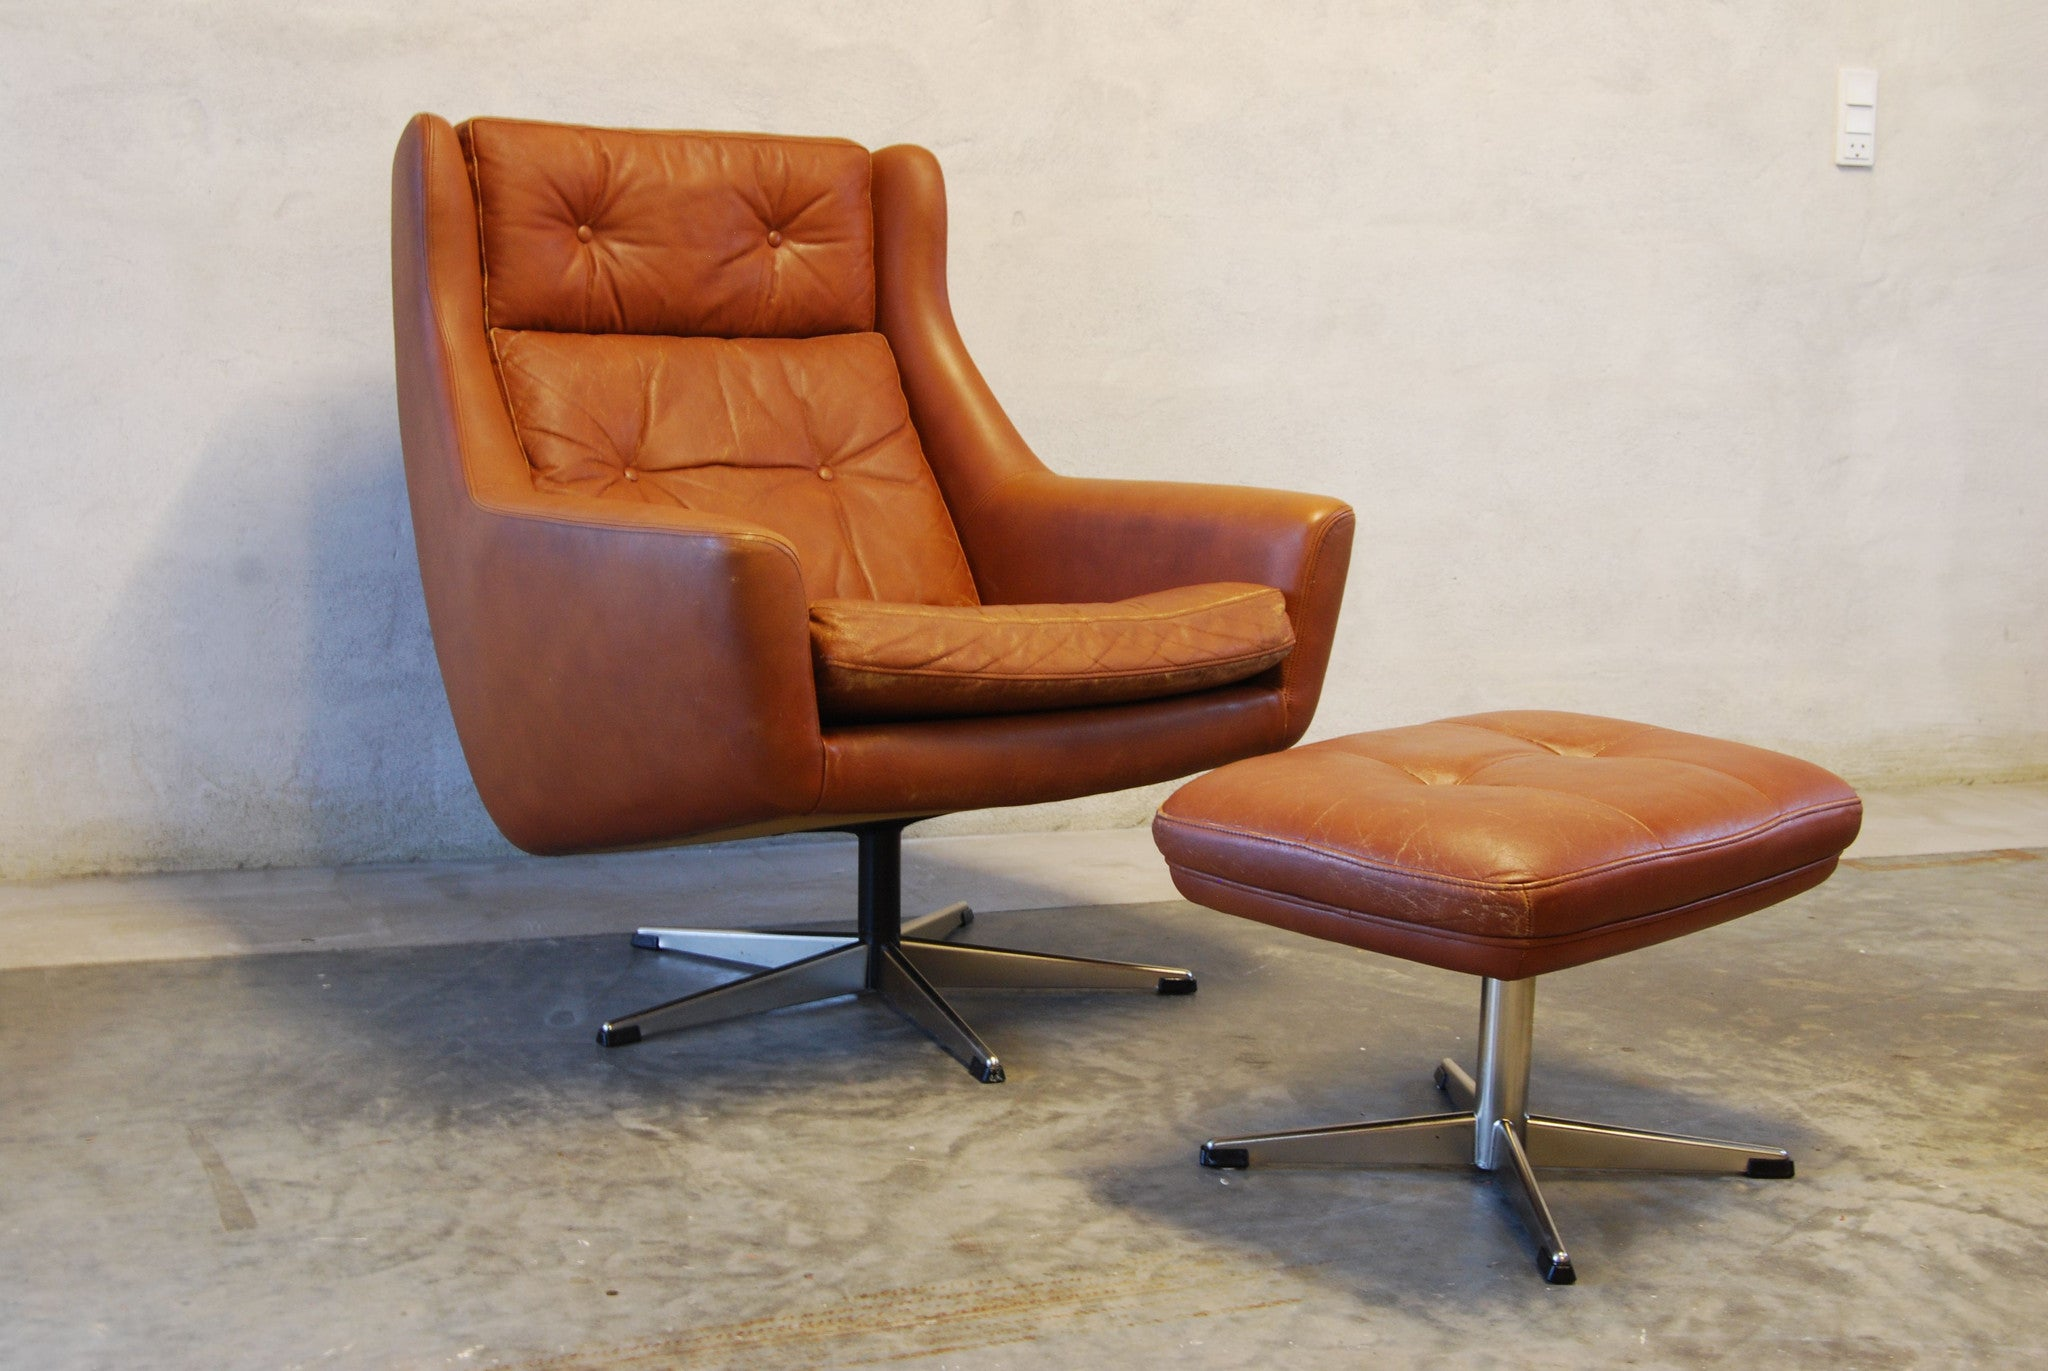 Swivel lounge chair with footstool